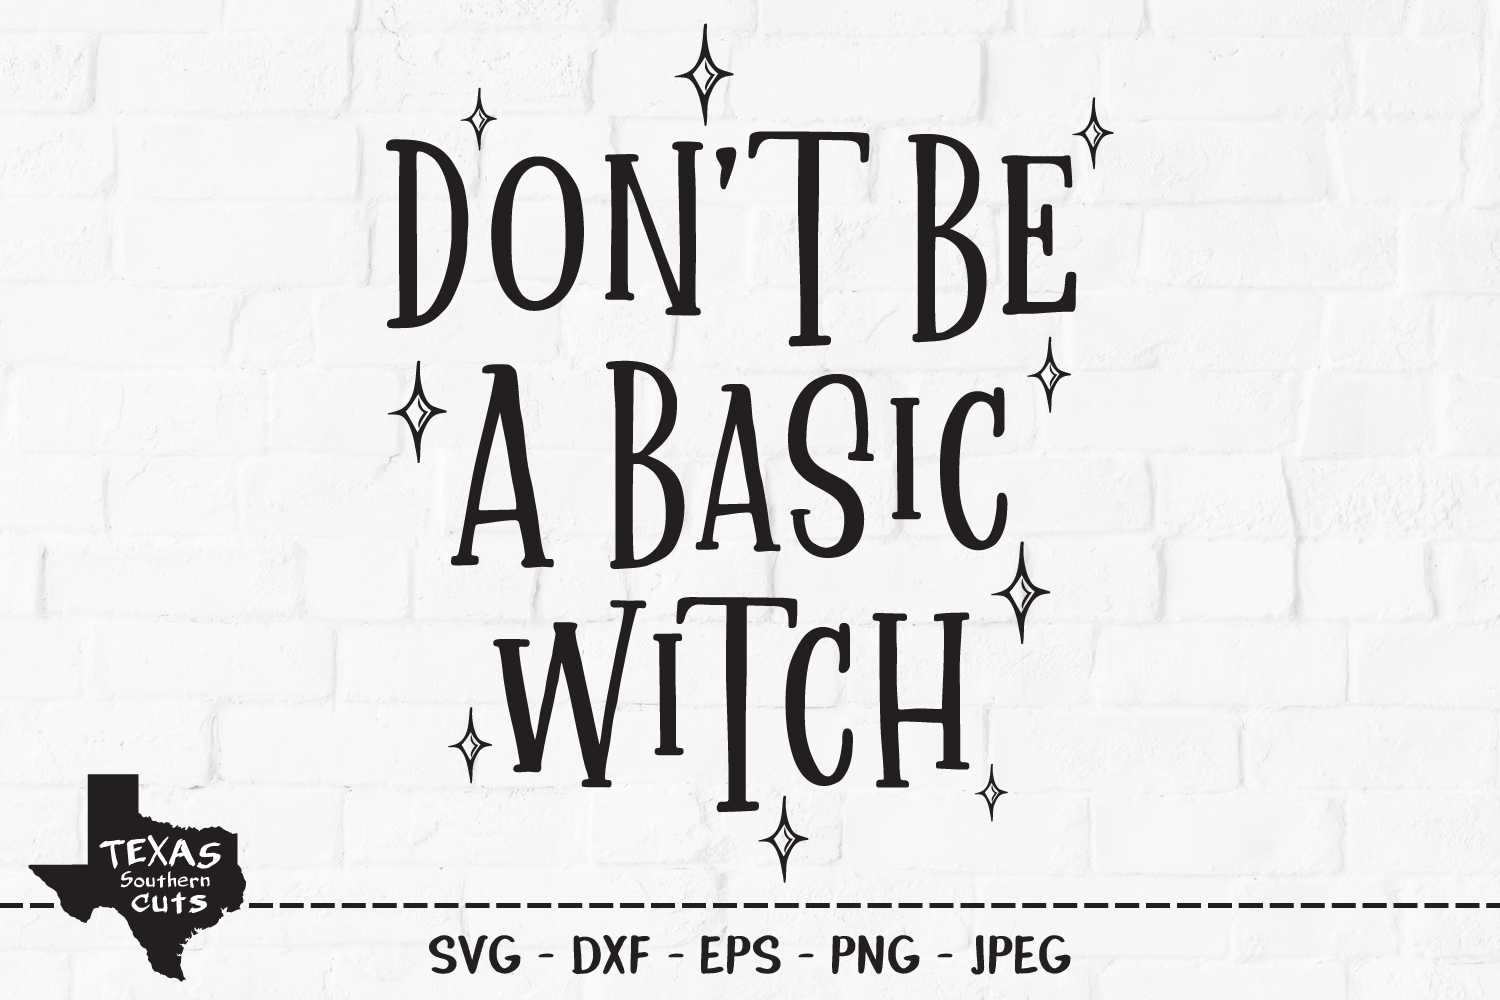 Download Free Don T Be A Basic Witch Halloween Graphic By Texassoutherncuts for Cricut Explore, Silhouette and other cutting machines.